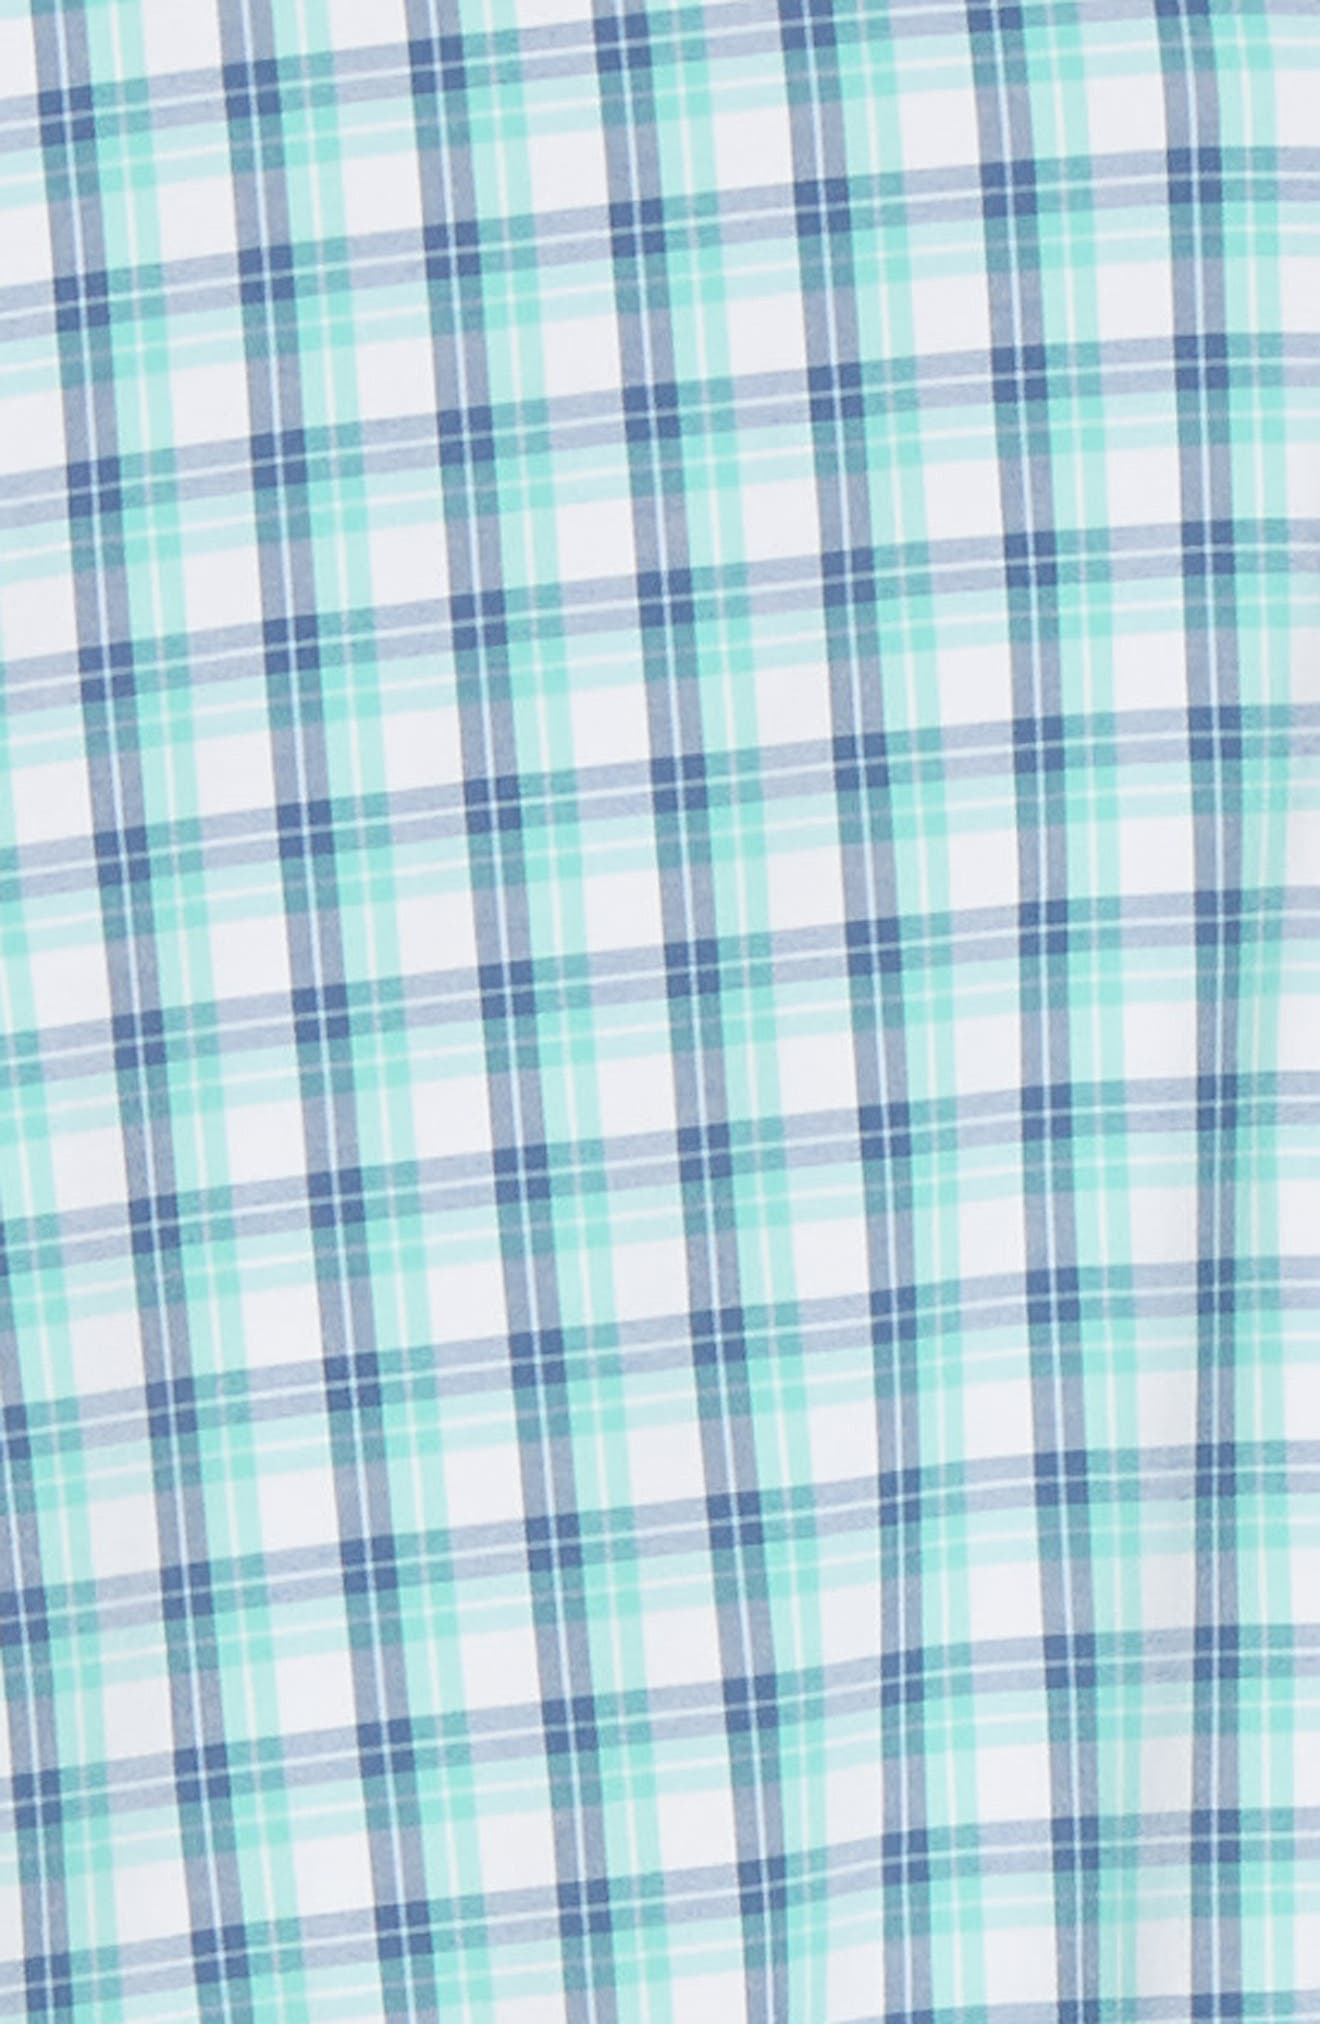 VINEYARD VINES,                             South Street Tucker Slim Fit Sport Shirt,                             Alternate thumbnail 6, color,                             CAPRI BLUE